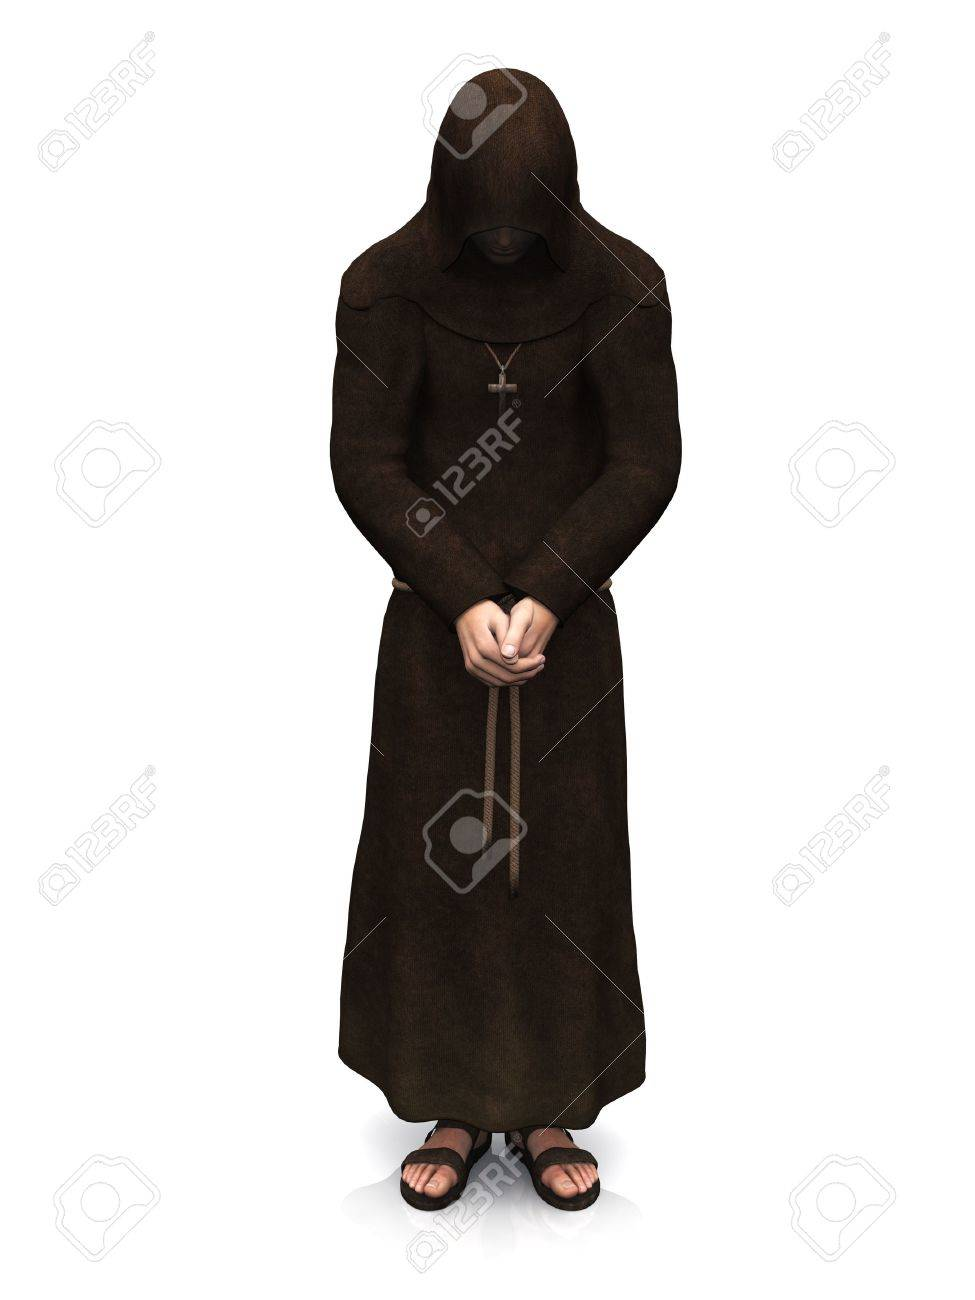 3d render of a christian monk with his head bowed, contemplating. White background. Stock Photo - 9496478